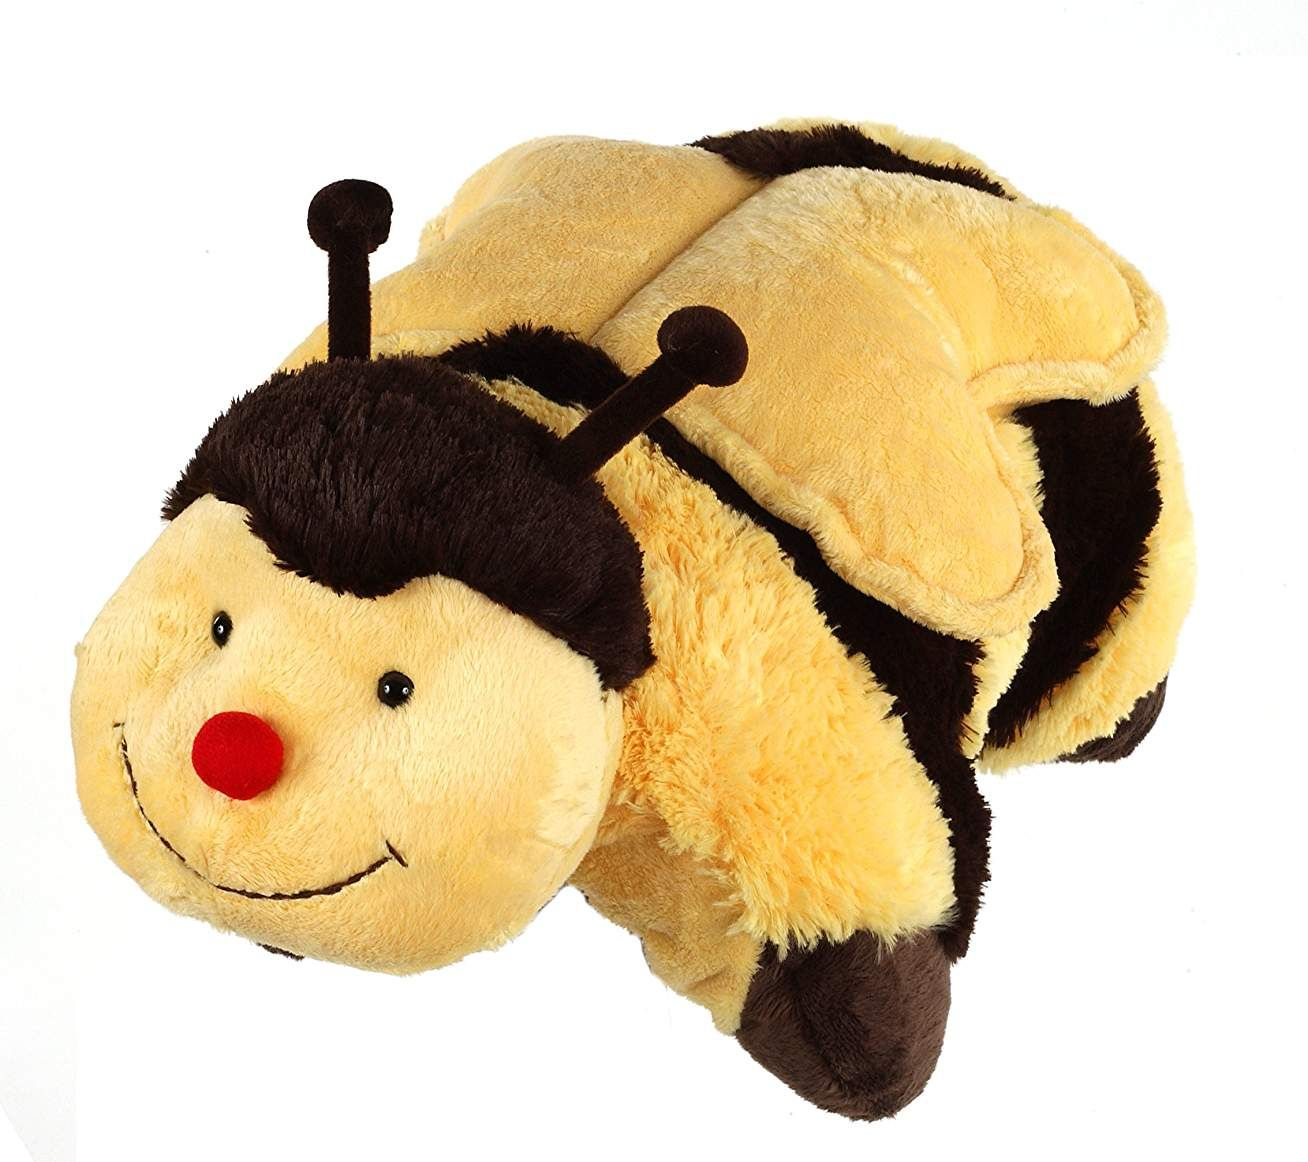 Lily Gifts & More Animal pillows, Bee toys